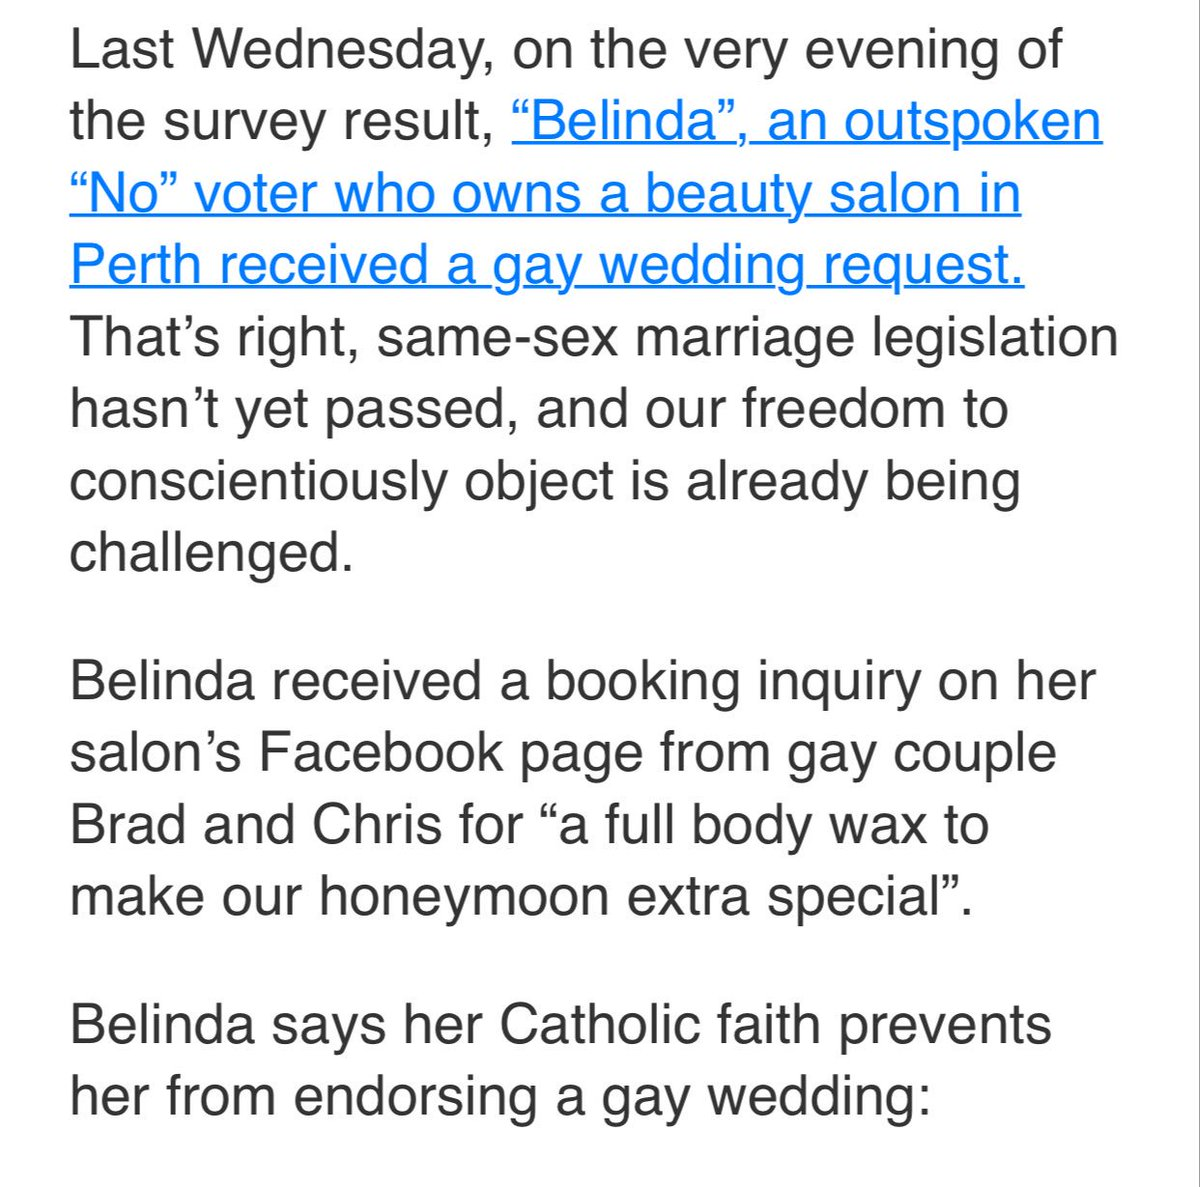 The first case of religious freedom in Australia post the plebiscite is apparently a deeply catholic beautician not wanting to wax some gay balls.